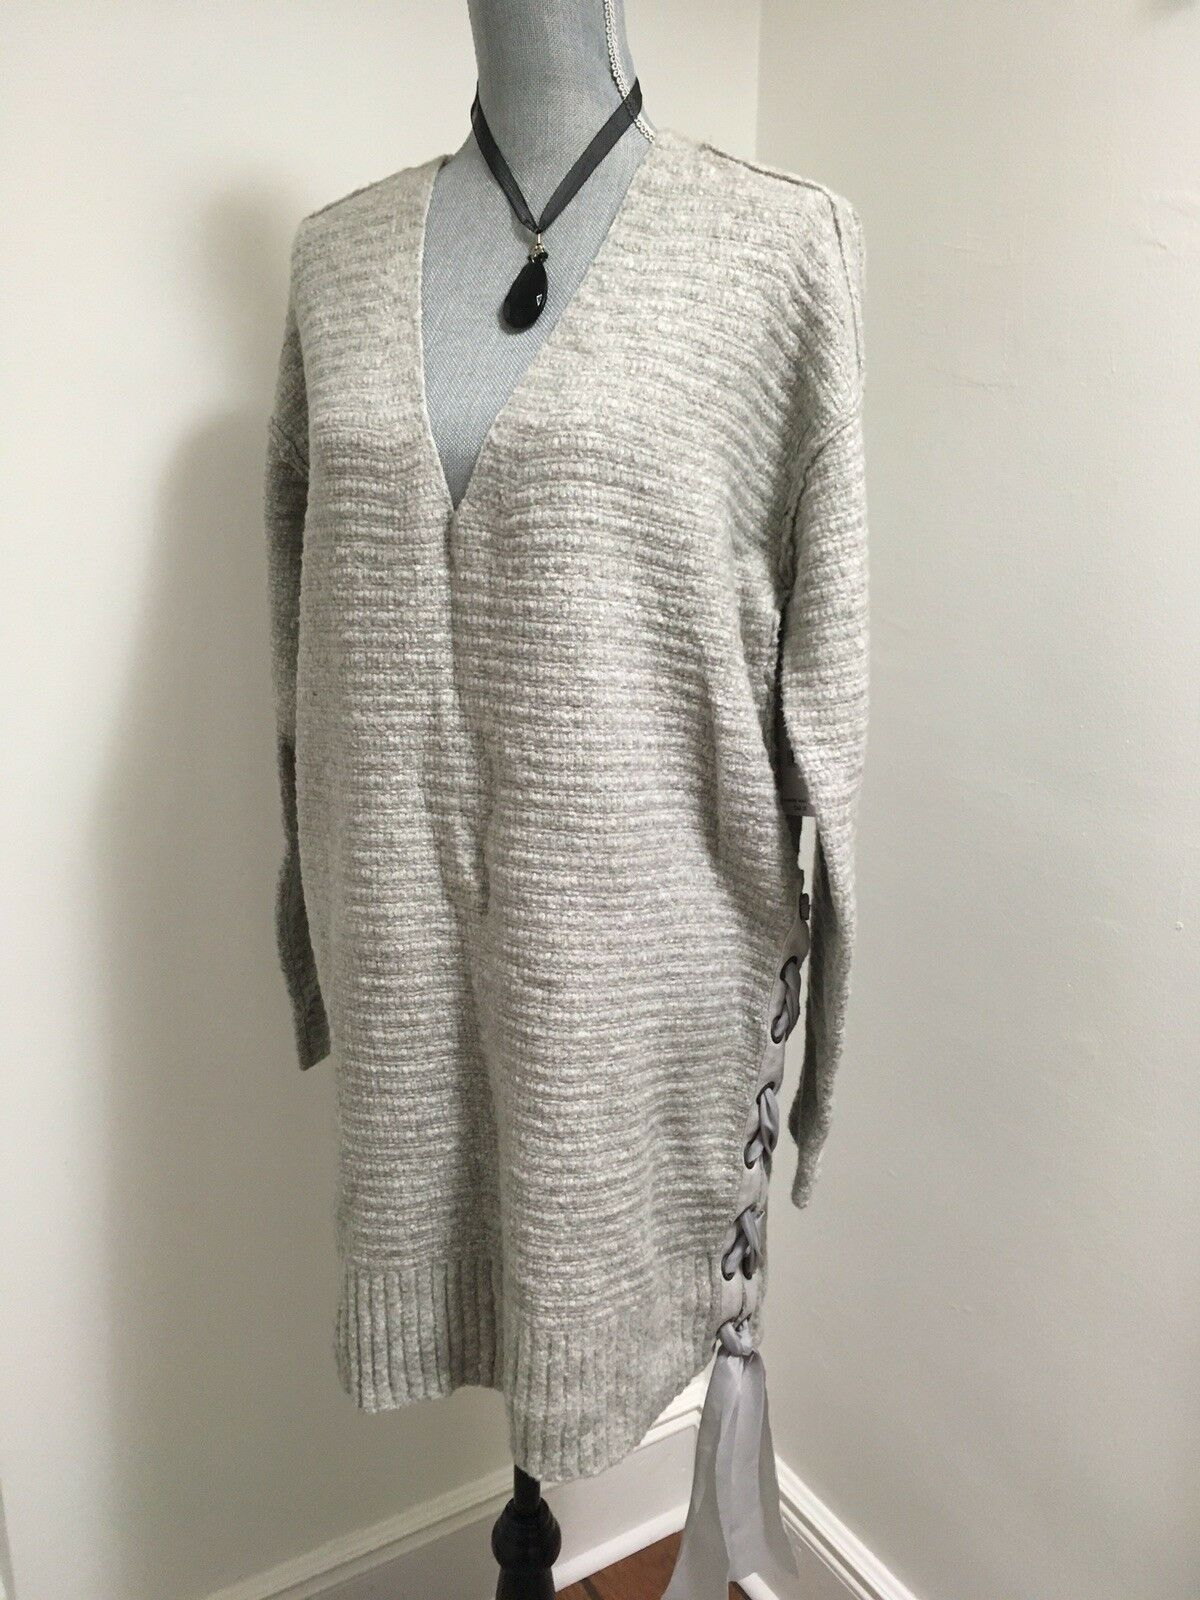 FREE PEOPLE Sz L Heart It Lace-Up Oversized Fit Sweater Grey Cotton Blend